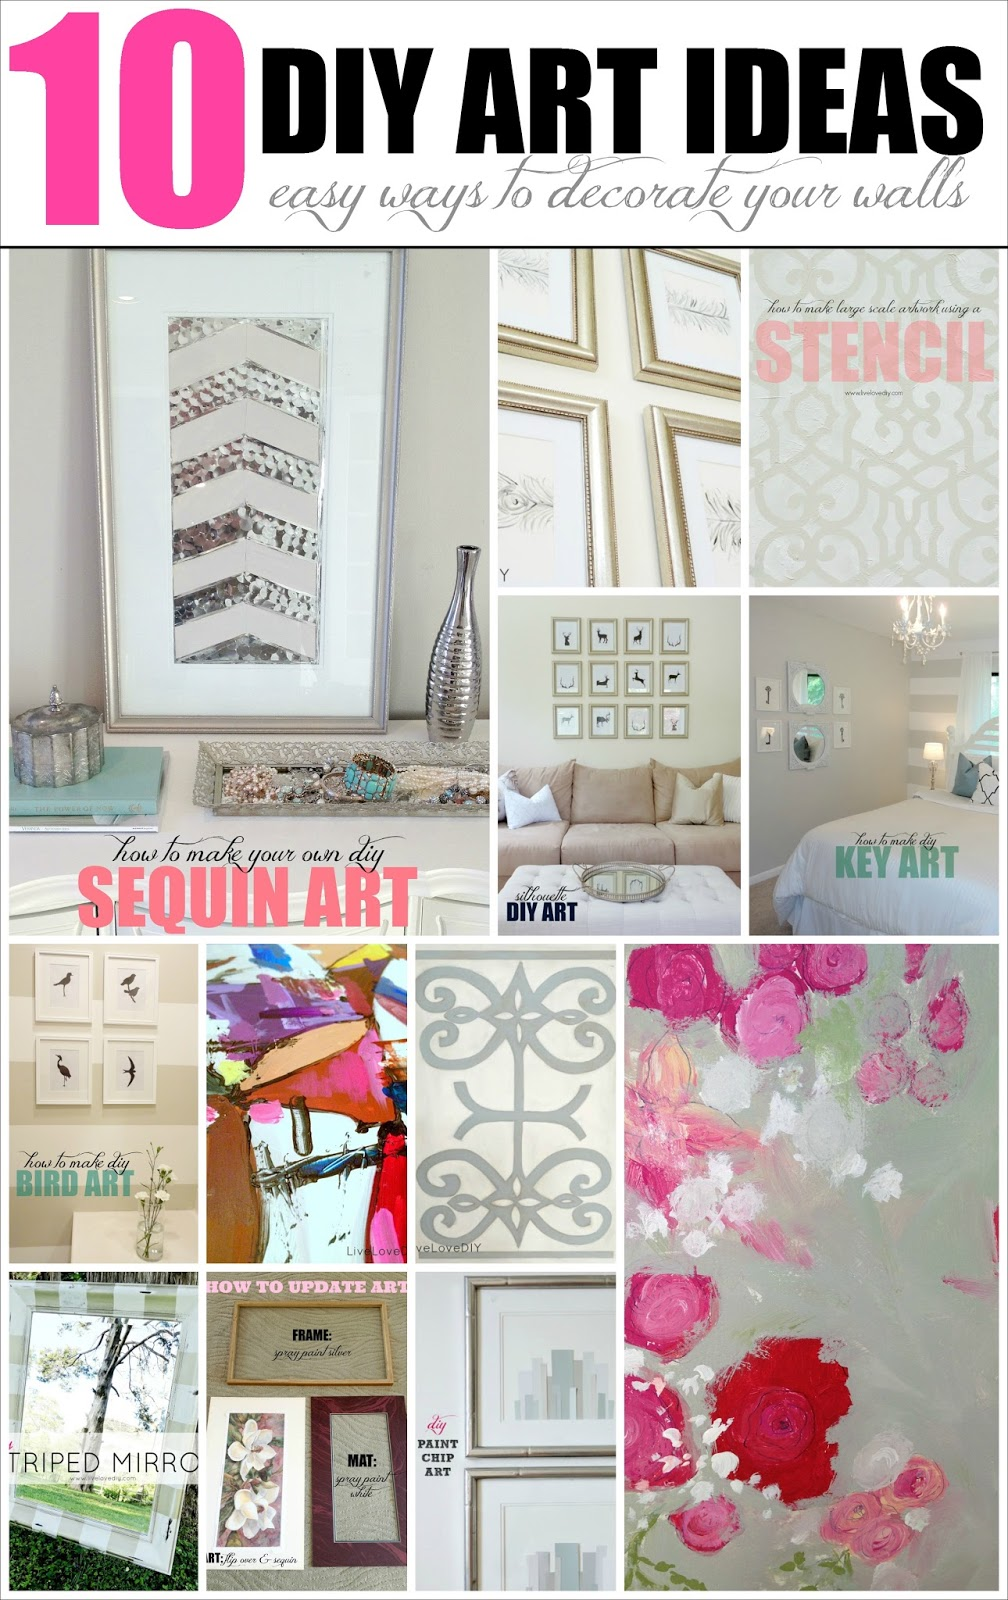 Diy Decorations For Your Bedroom Livelovediy 10 Diy Art Ideas Easy Ways To Decorate Your Walls